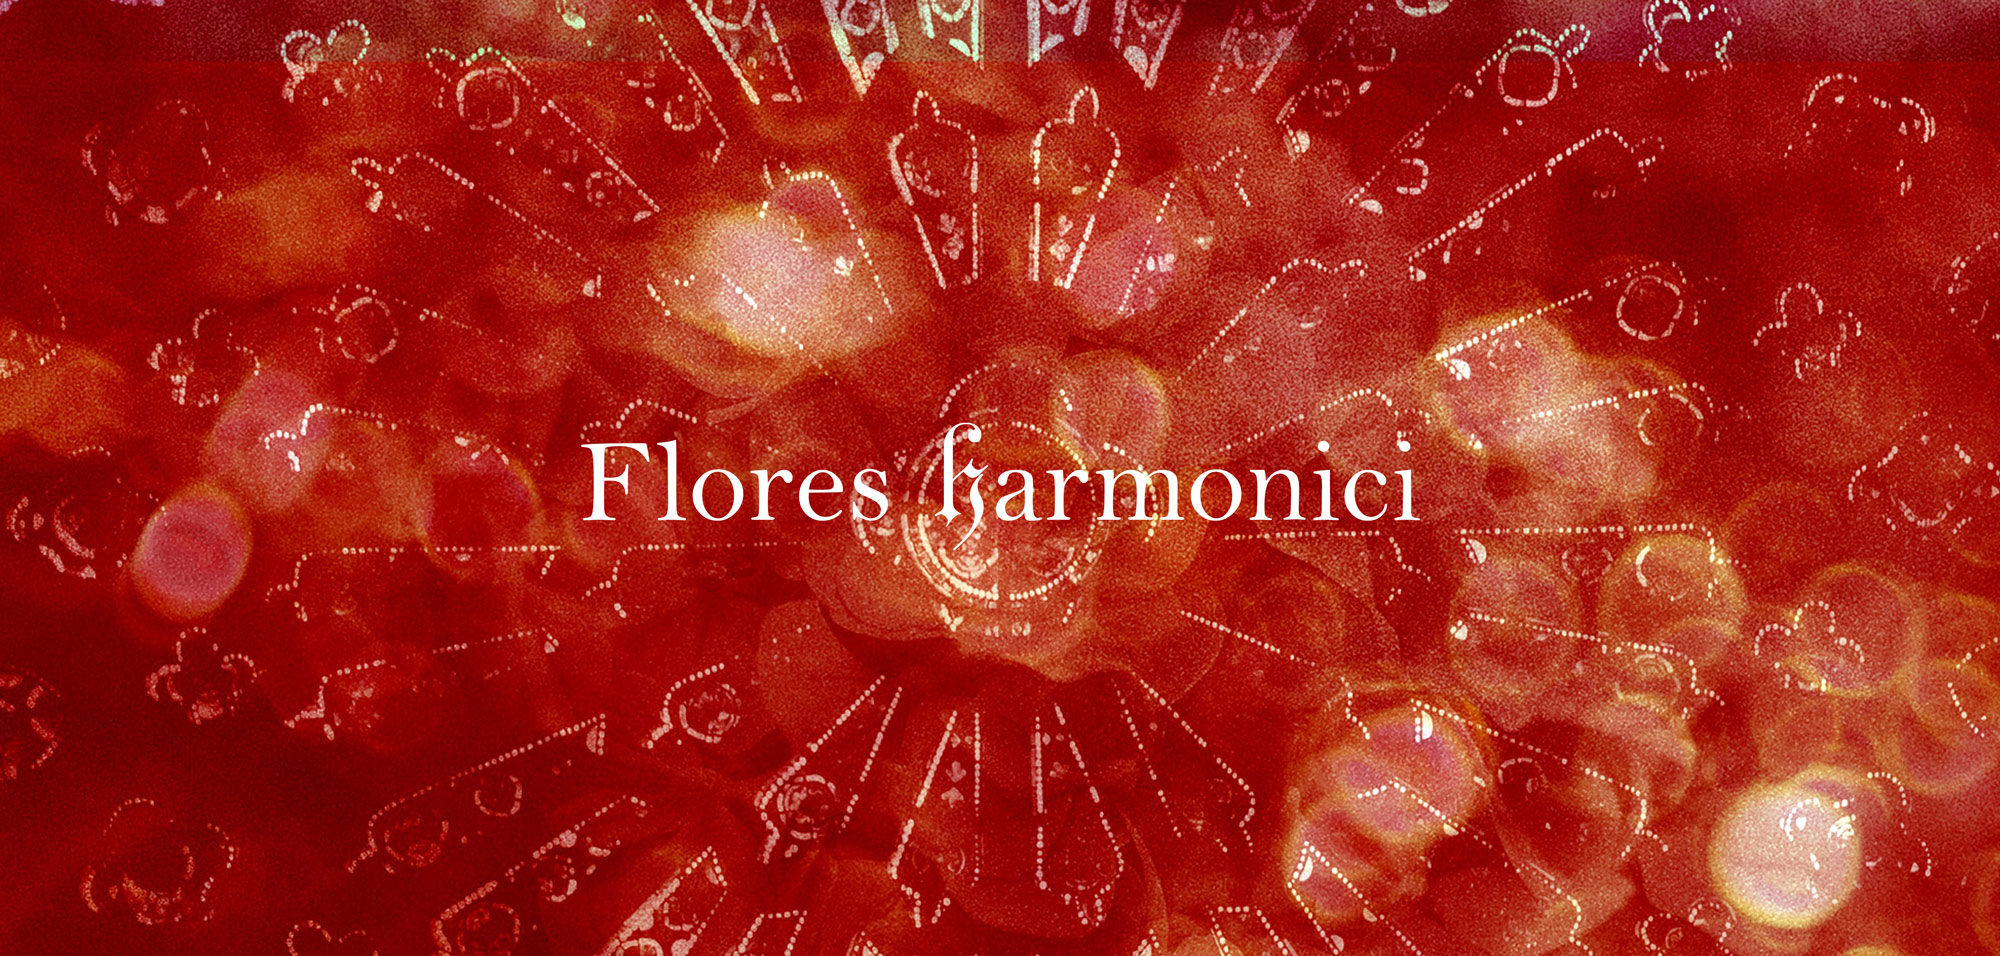 flores-harmonici-agence-ysEe-